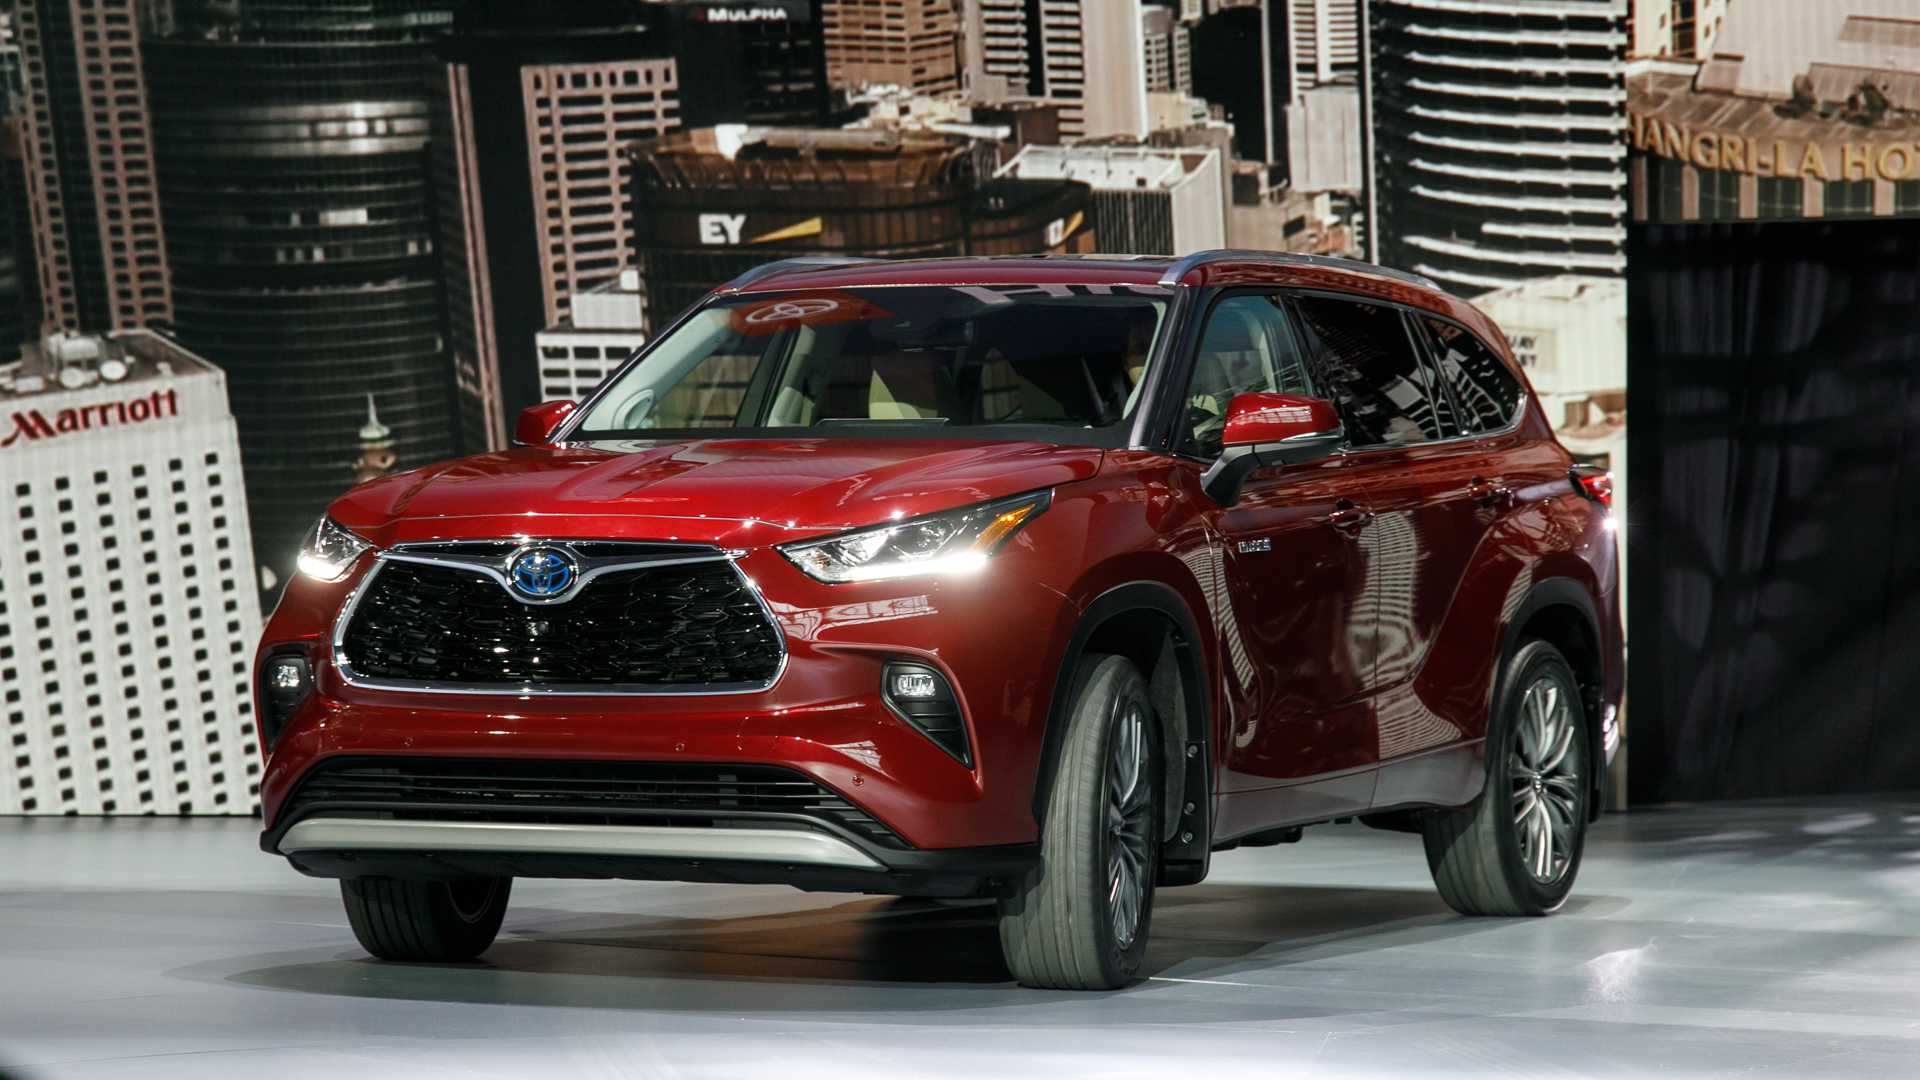 37 A Toyota Kluger New 2020 Price And Review